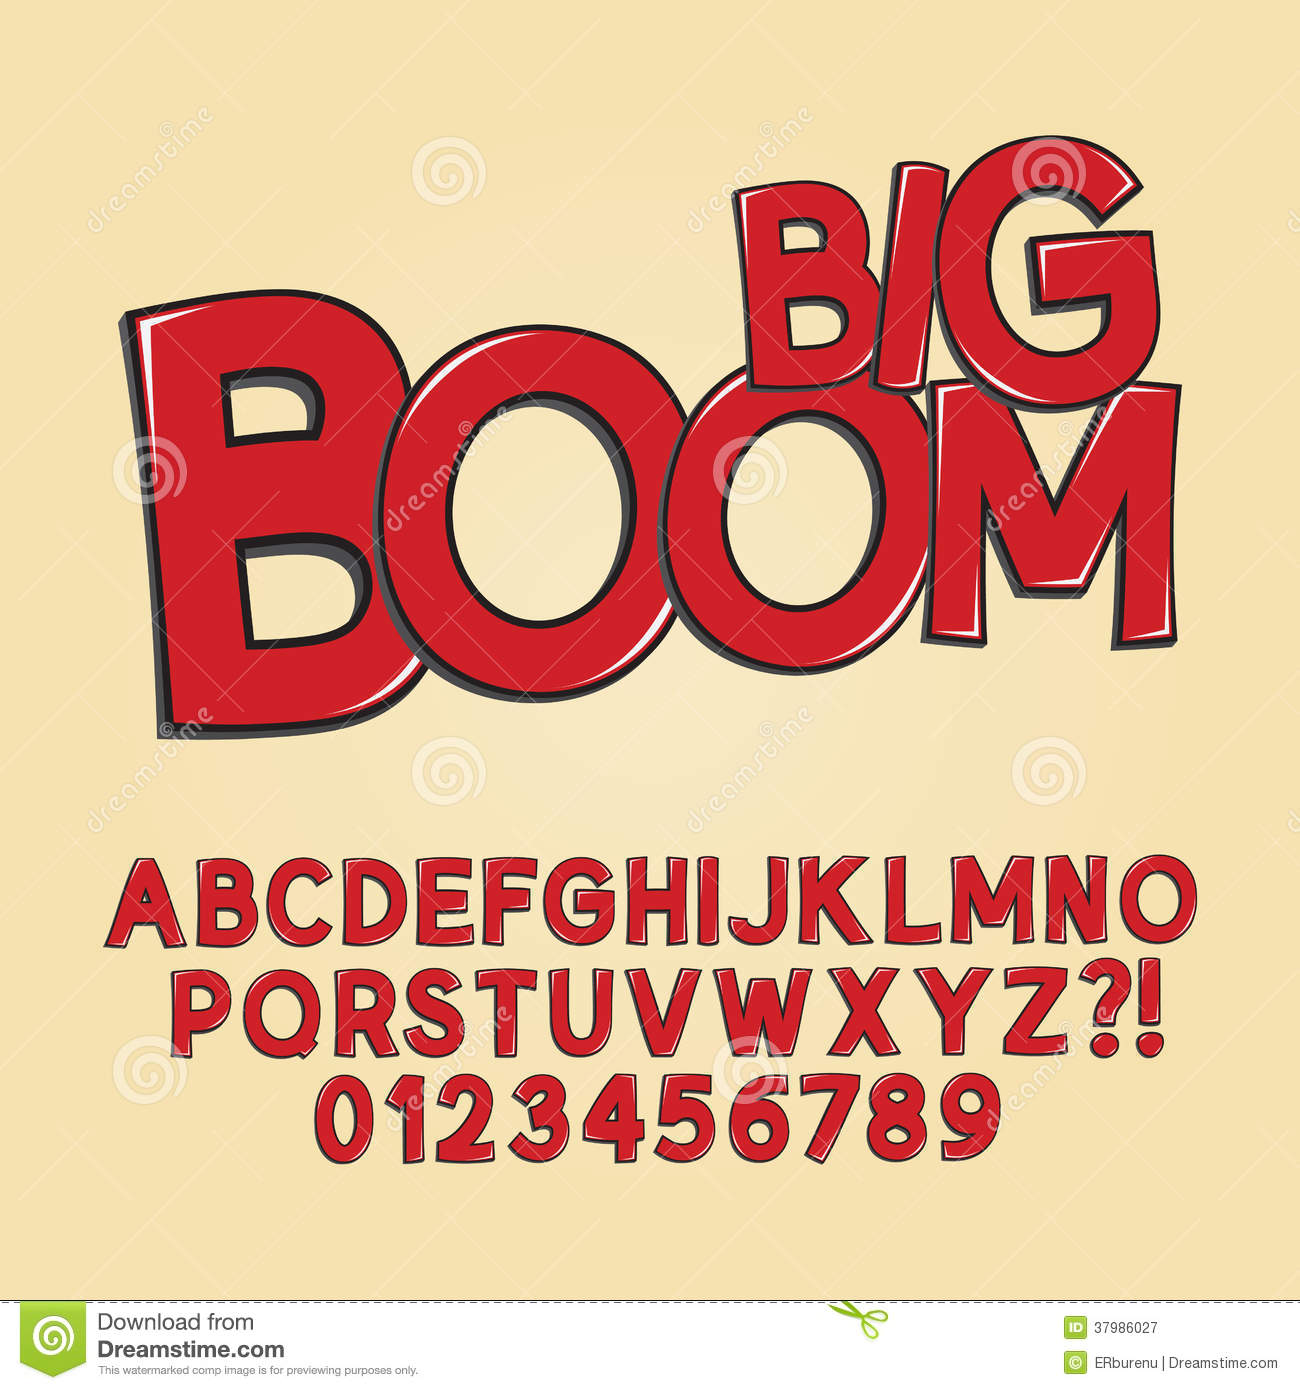 Favoloso Abstract Boom Pop Art Font And Numbers Stock Vector - Image: 37986027 KP02